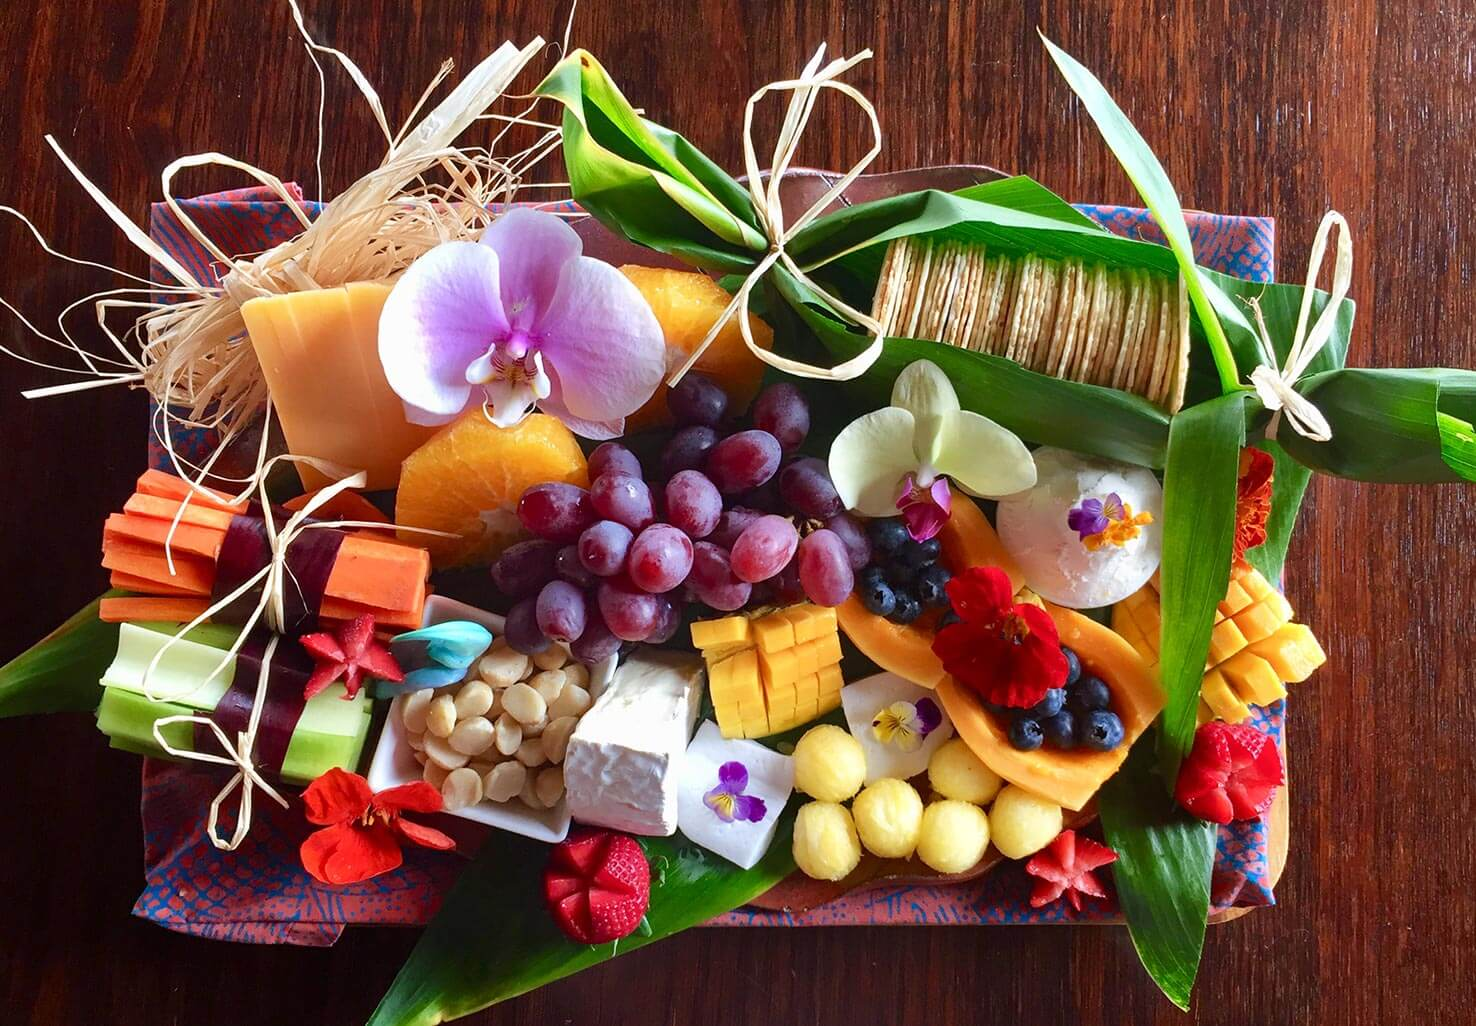 Luxury cheese platter with crackers, fruit, and nuts